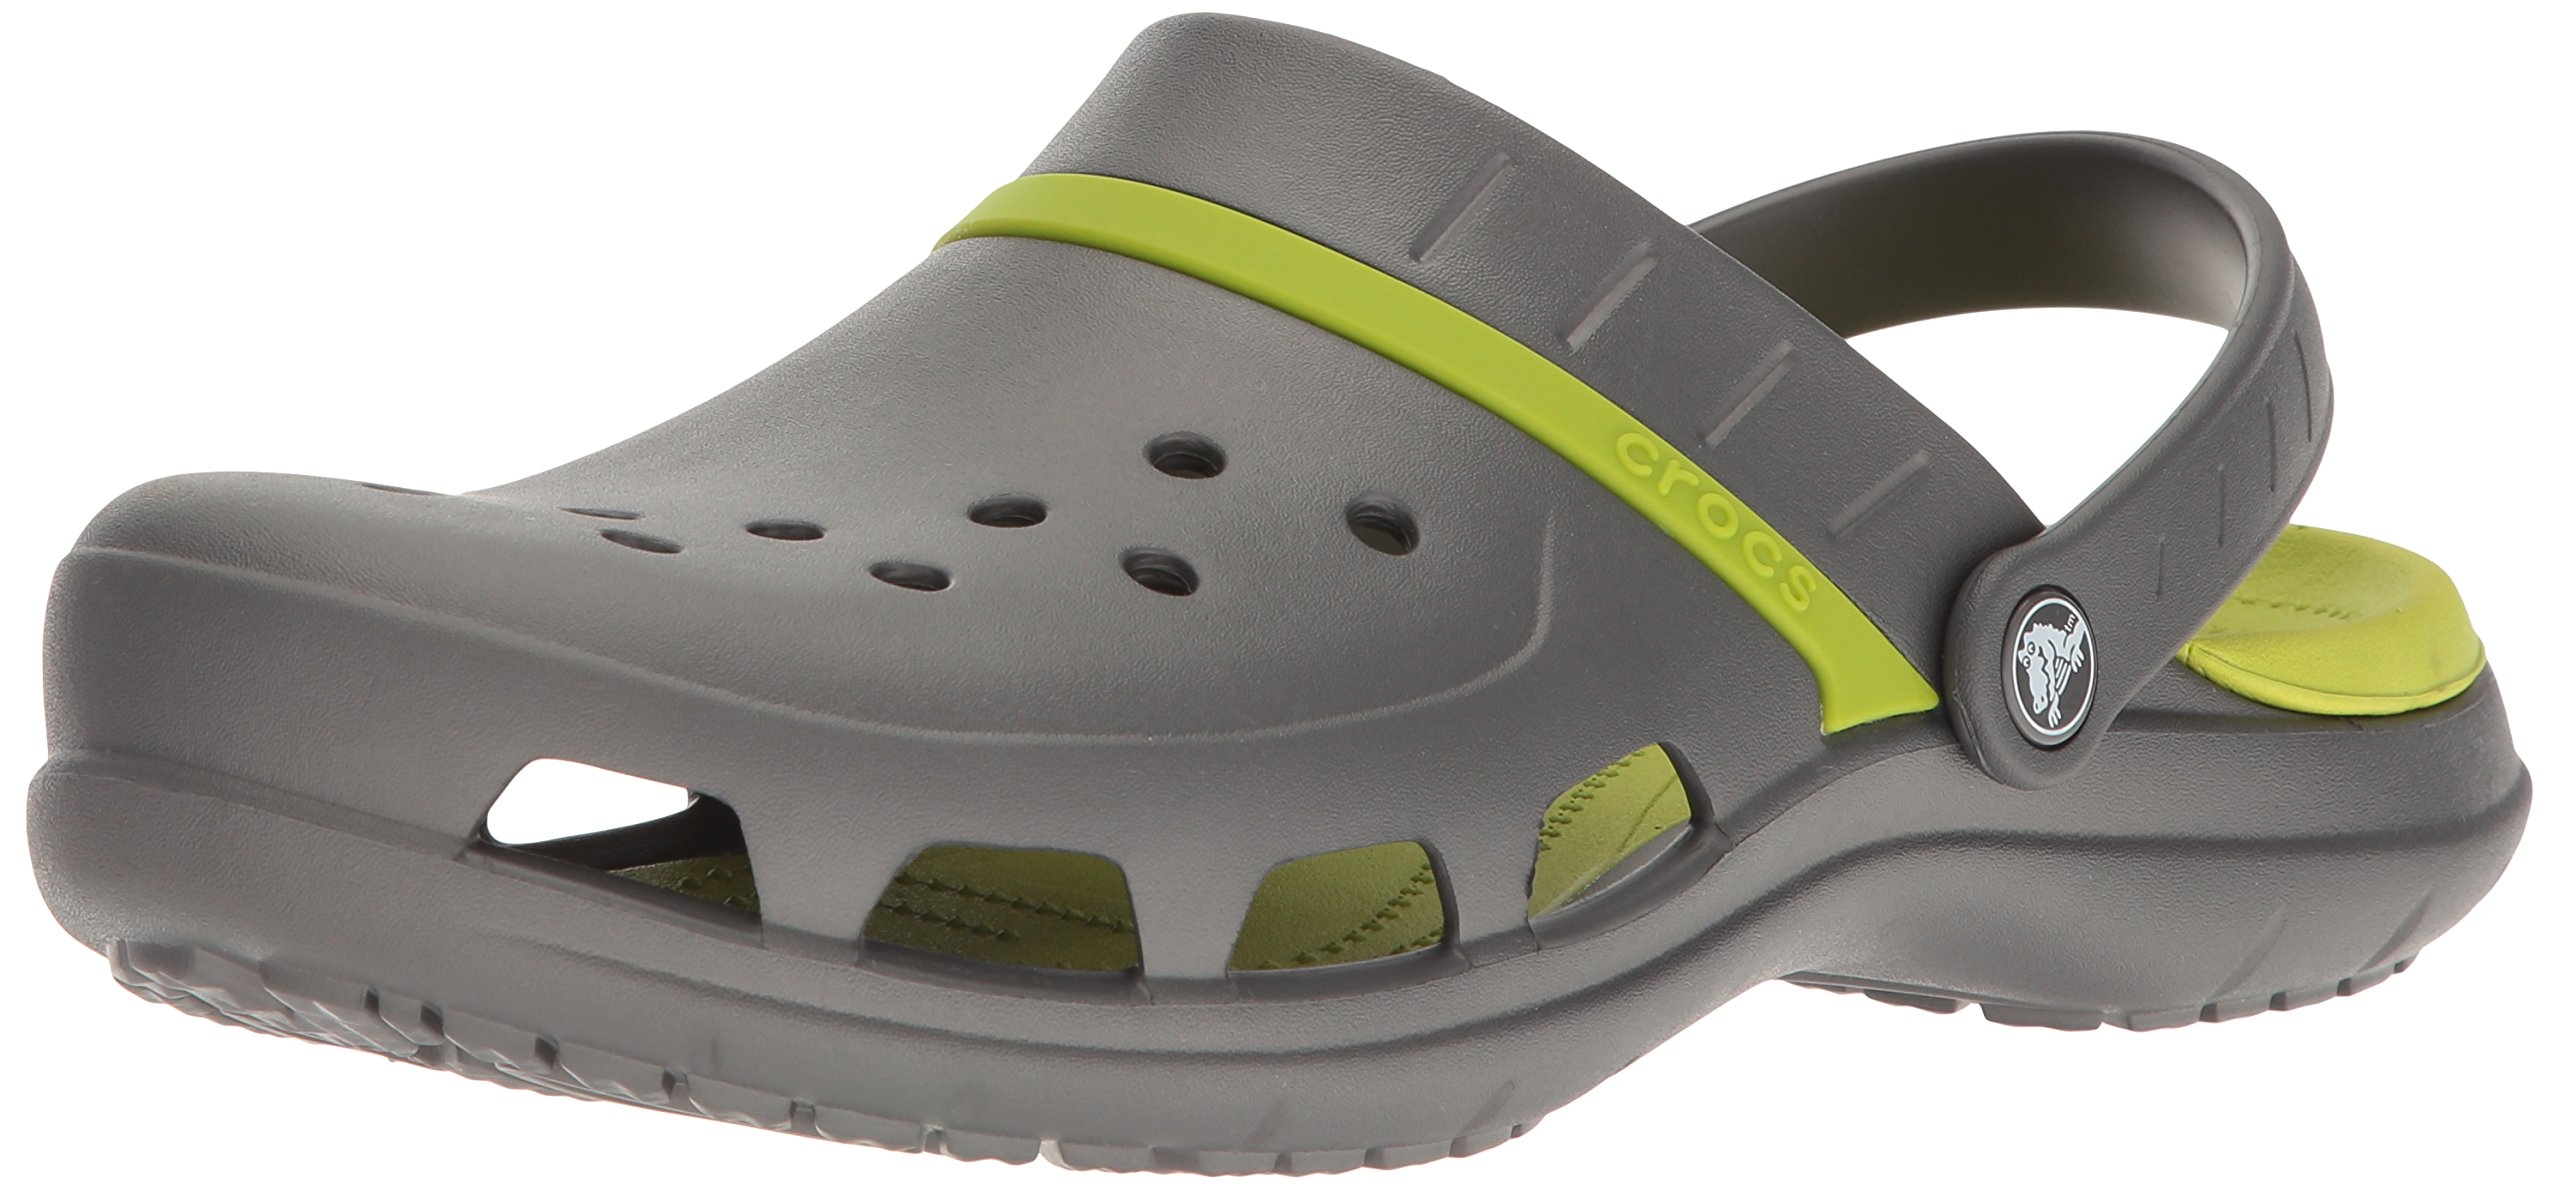 Crocs Unisex Modi Sport Clog Mule, Graphite/Volt Green, 13 US Men / 15 US Women by Crocs